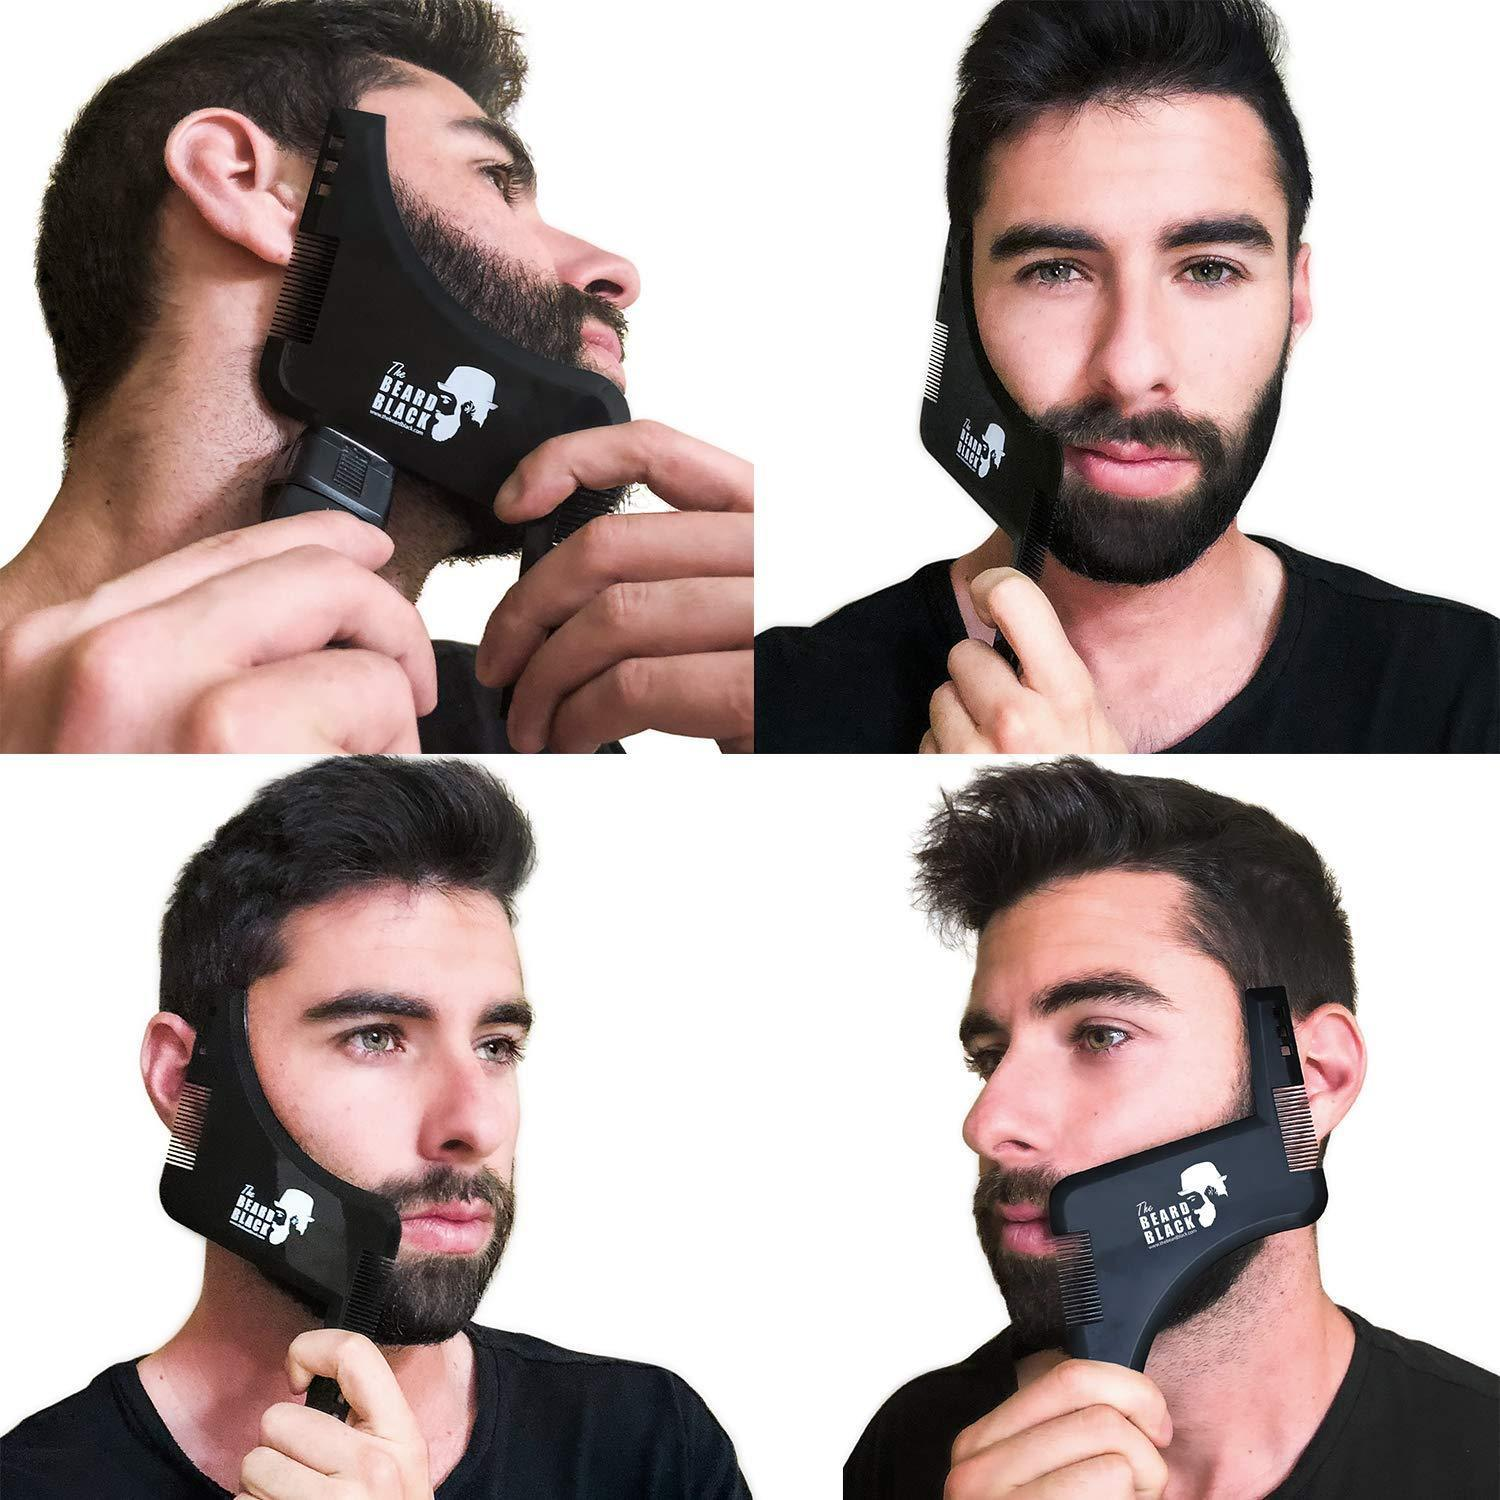 (Last Day Promotion&50% OFF)Rechargeable Electric Cordless Hair Trimmer - For Shaving Beard, Eyebrows & hair with Non-Slip grip desgin.